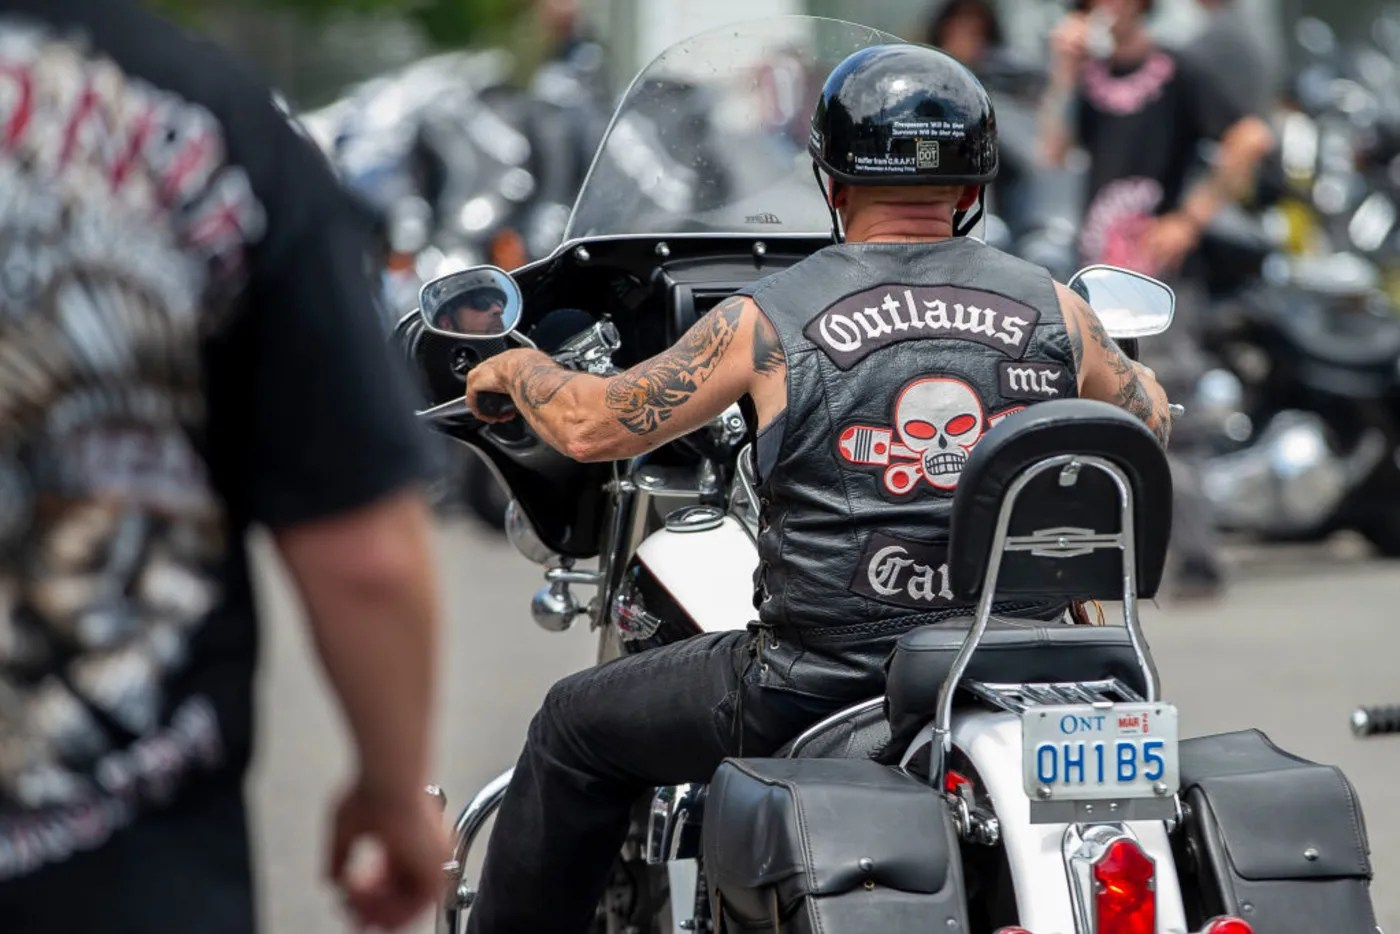 Outlaws Motorcycle Club rider back vest